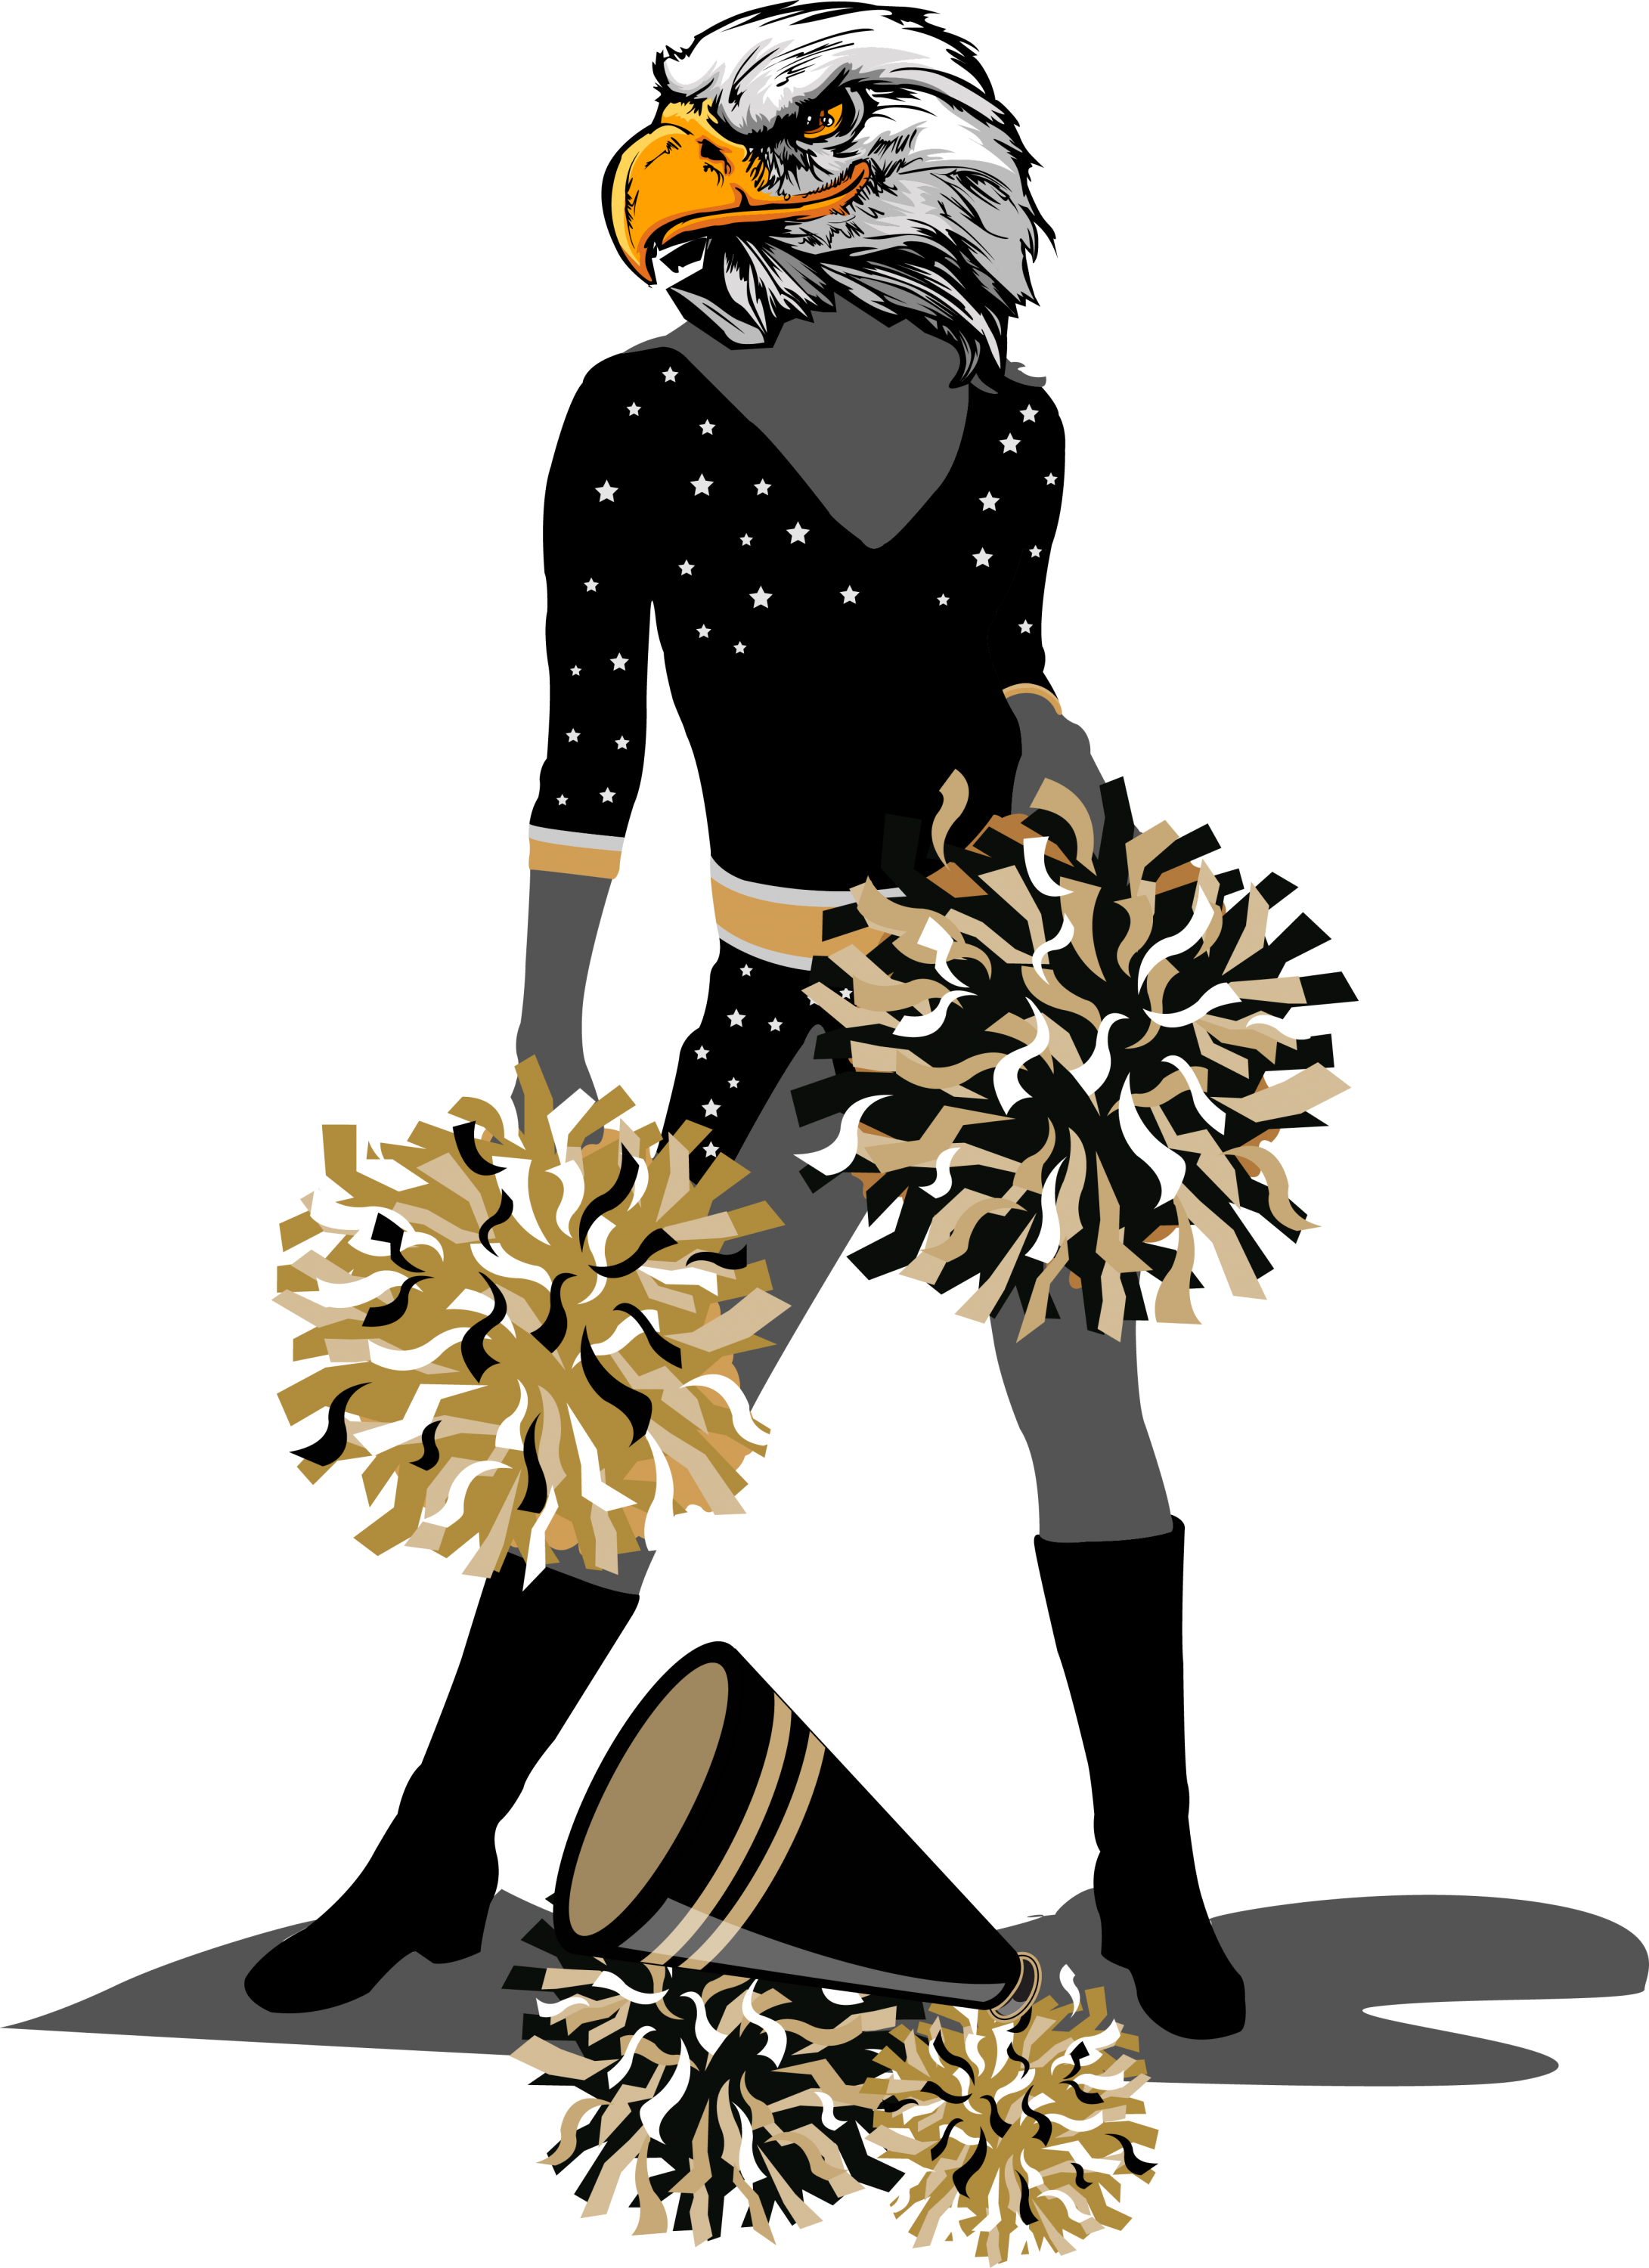 Drill team the allamerican. Eagle with football clipart